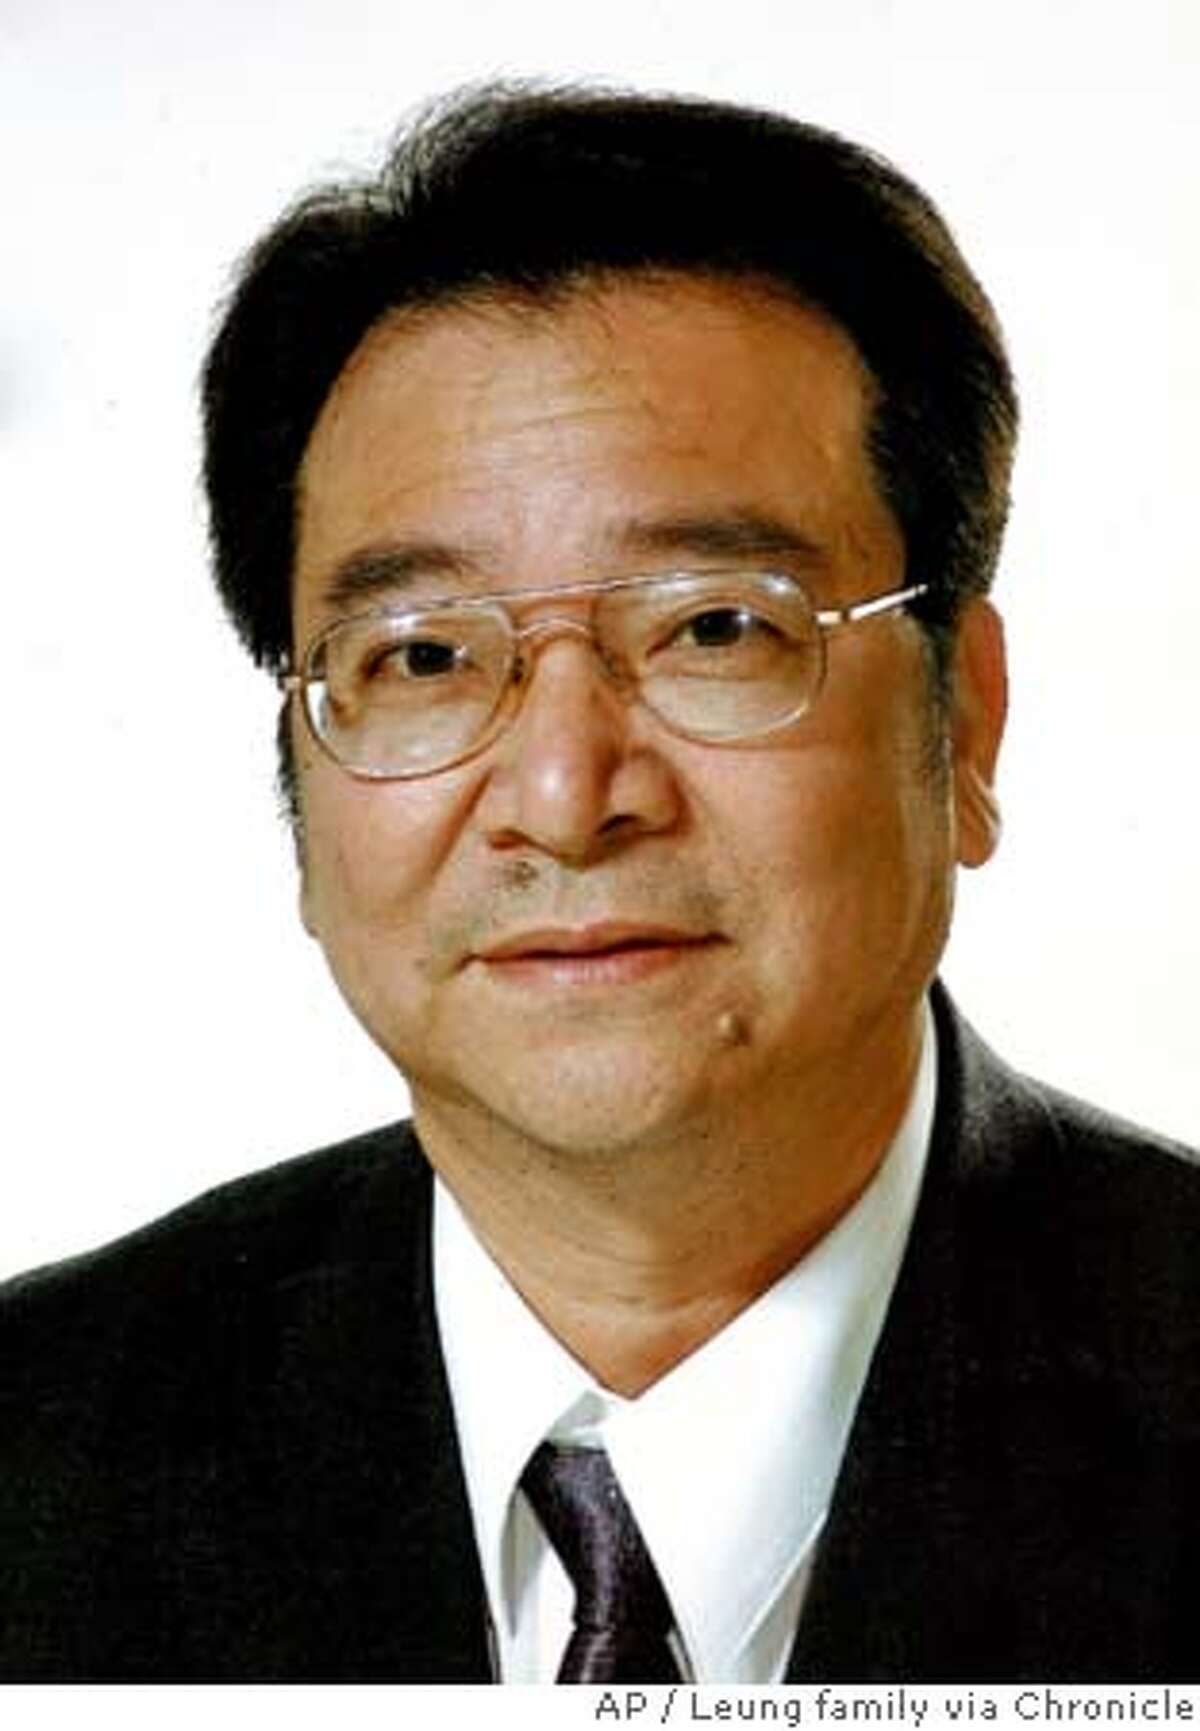 Allen Leung in an undated family photo. Leung, 56, was killed Monday, Feb. 27, 2006, inside his import-export business Wonkow International Enterprises in Chinatown.